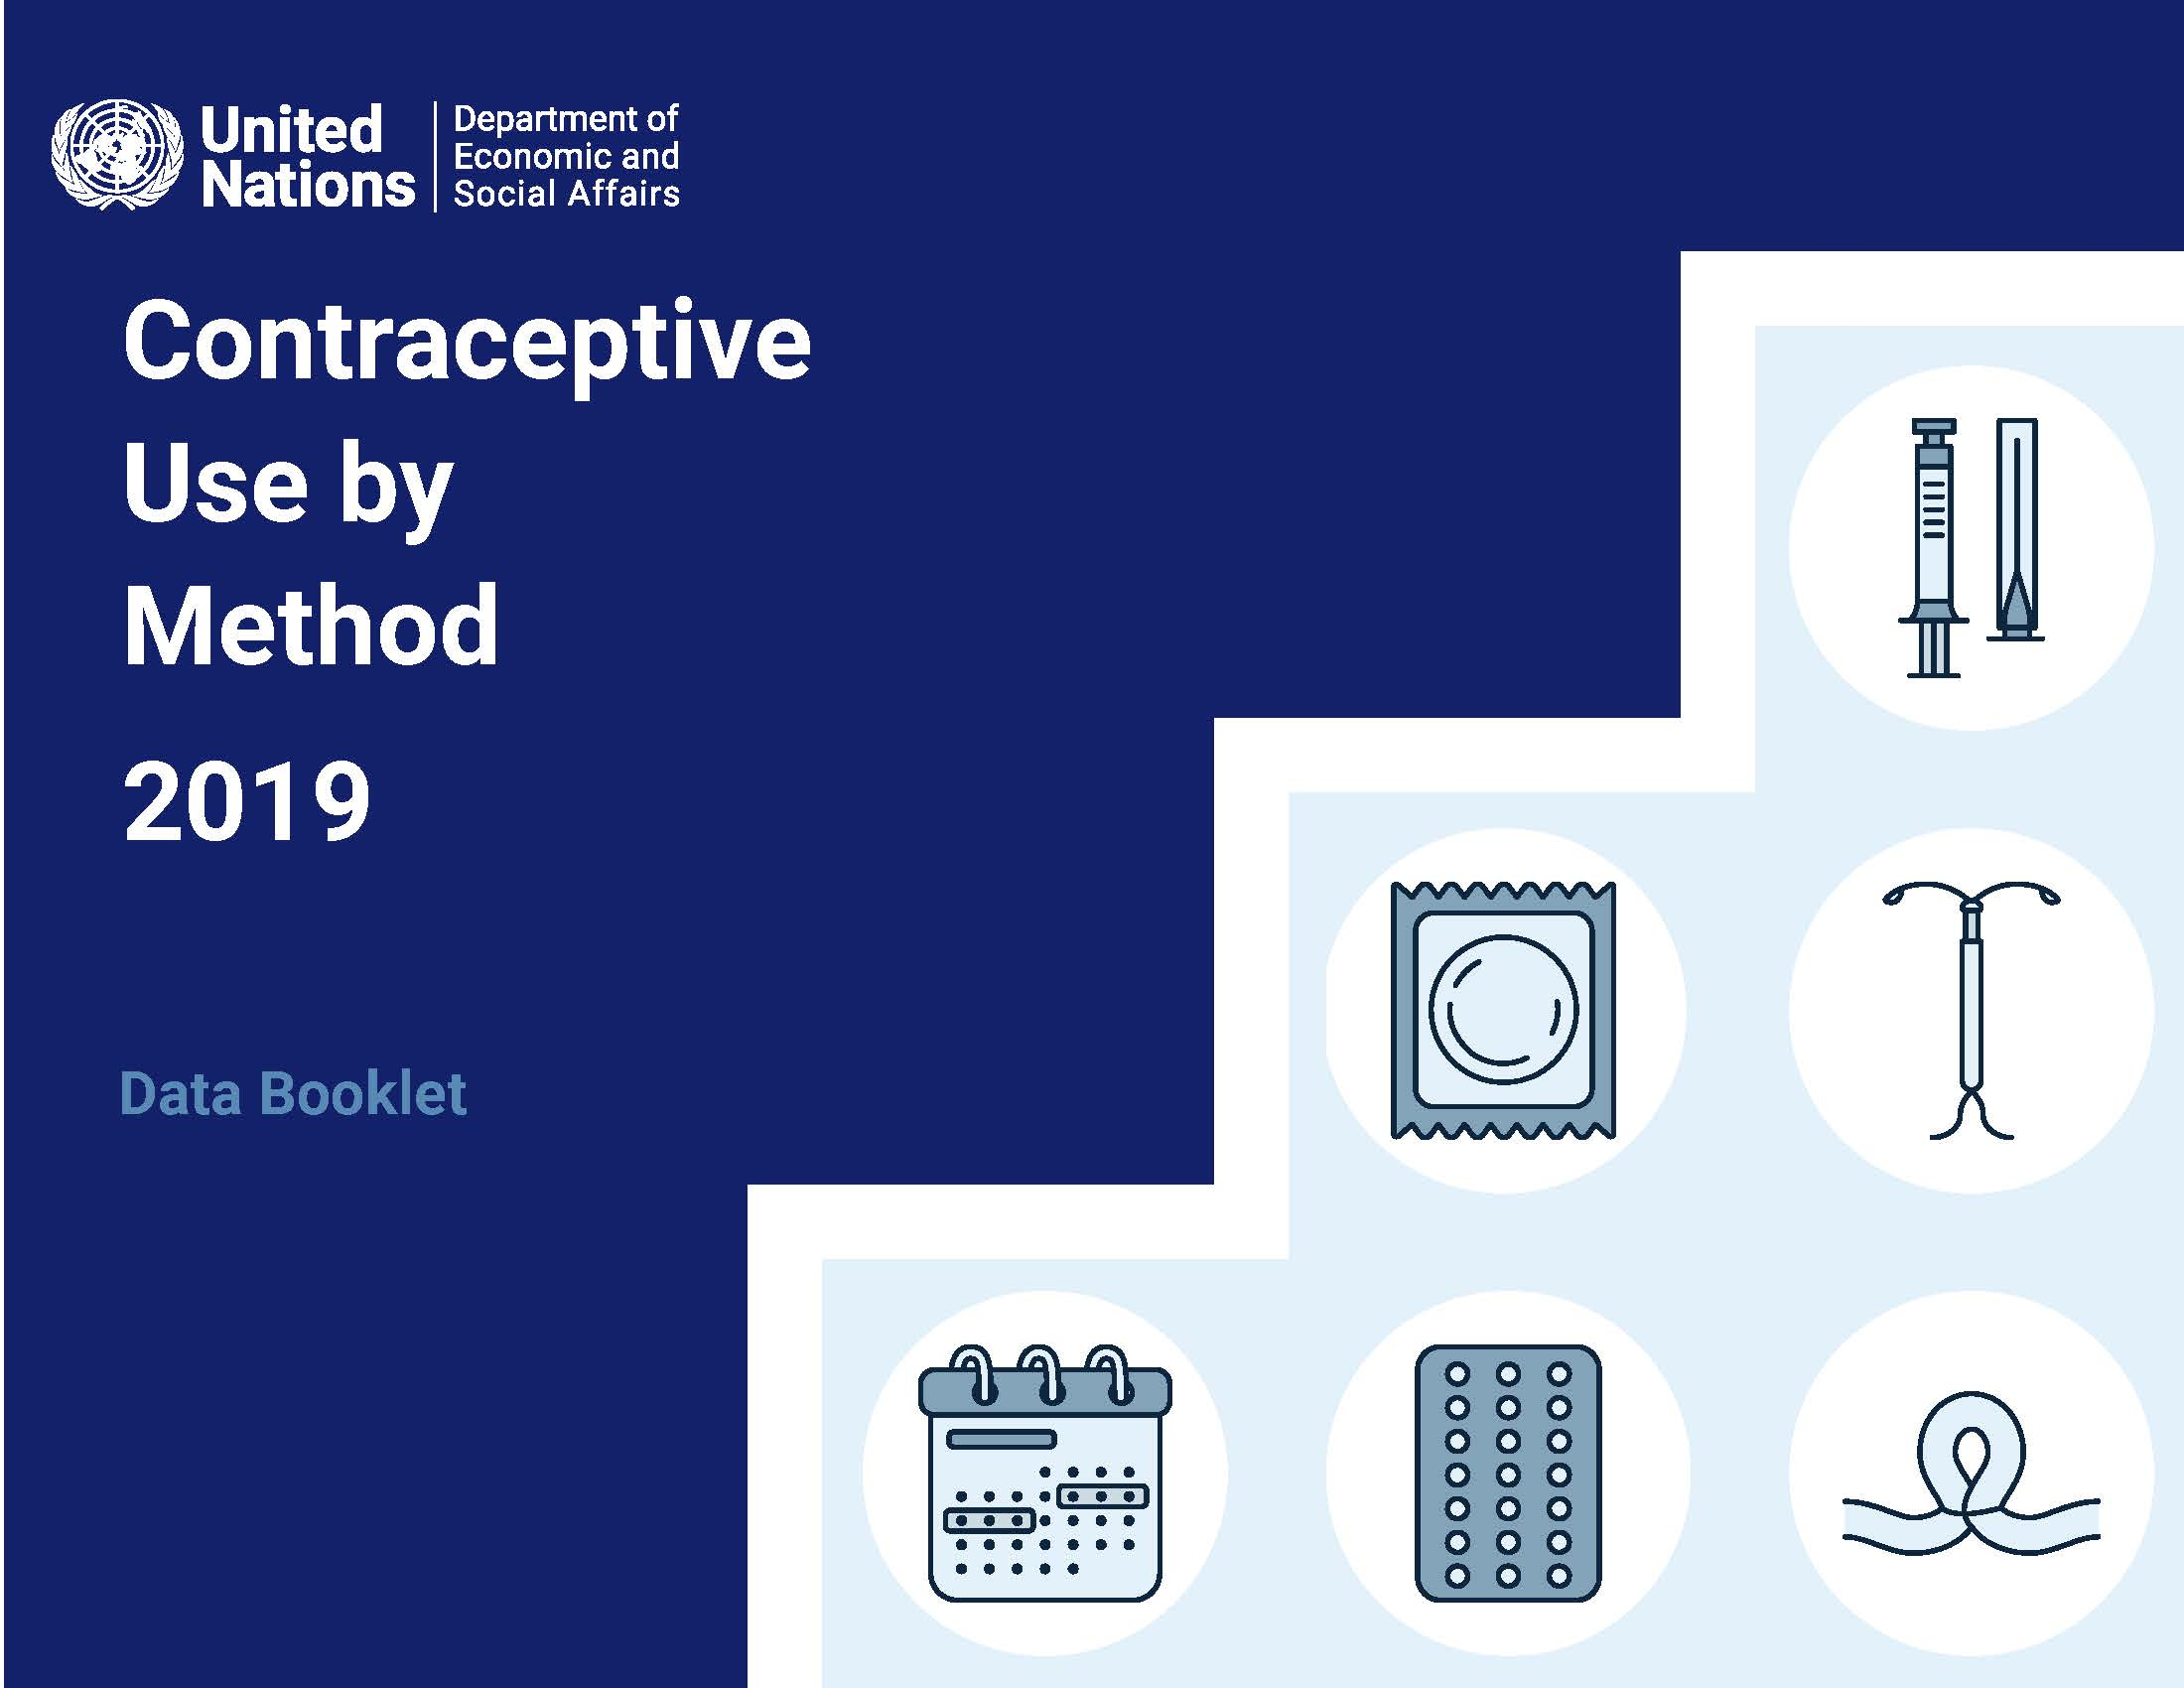 CONTRACEPTIVE USE METHOD 2019 BKLT